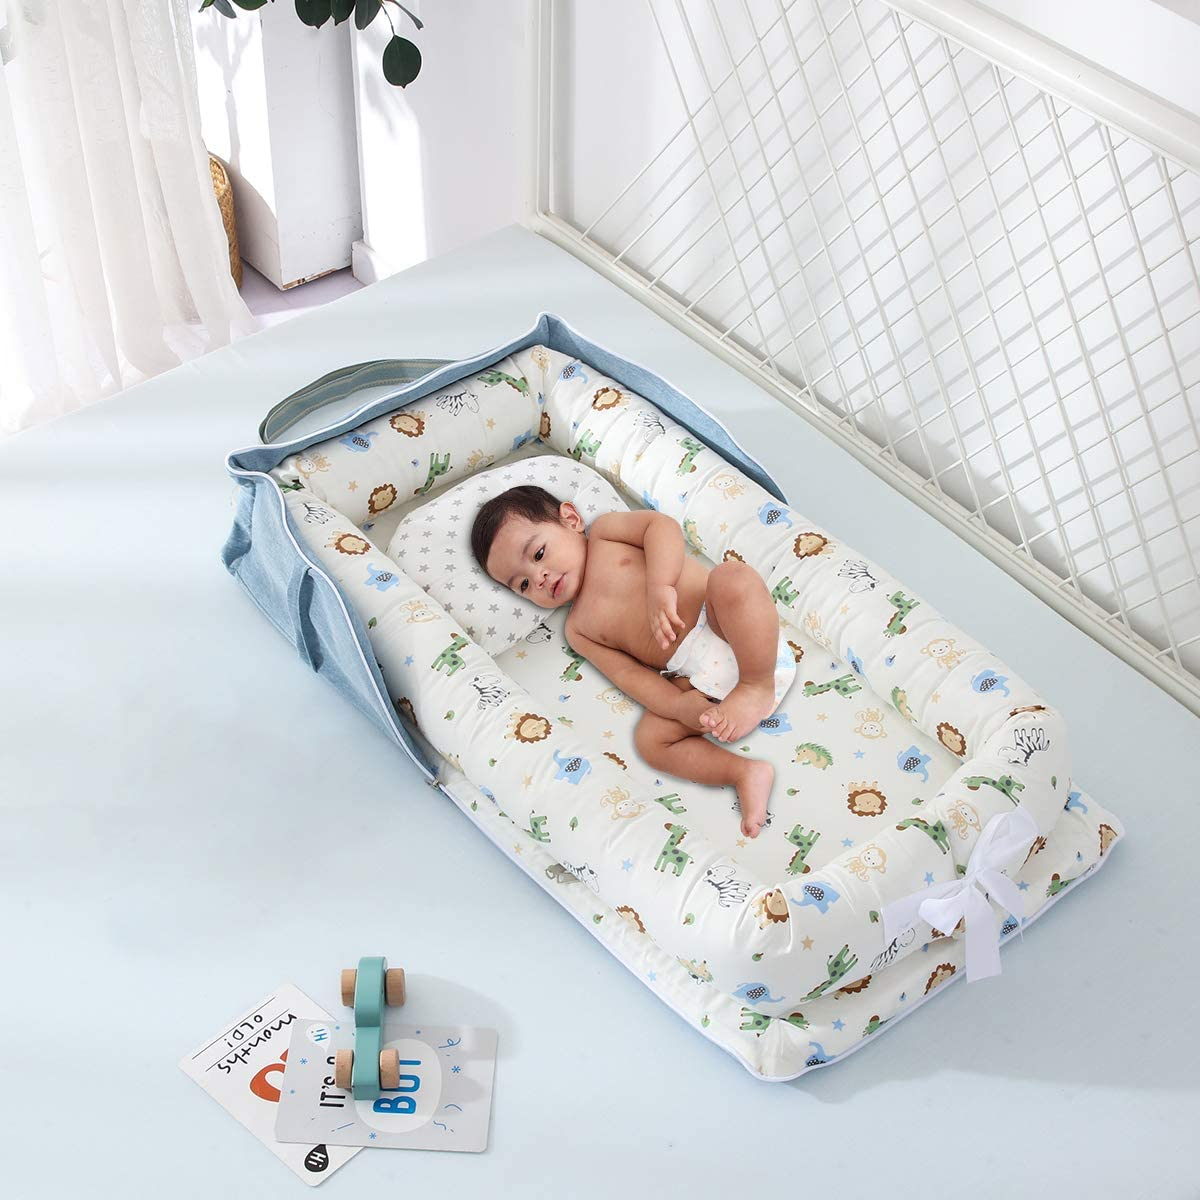 Newborn Baby Bassinet for Bed Portable Cosleeping Baby Bed for Bedroom Lounging and Travel DaMohony Baby Lounger Cuddling